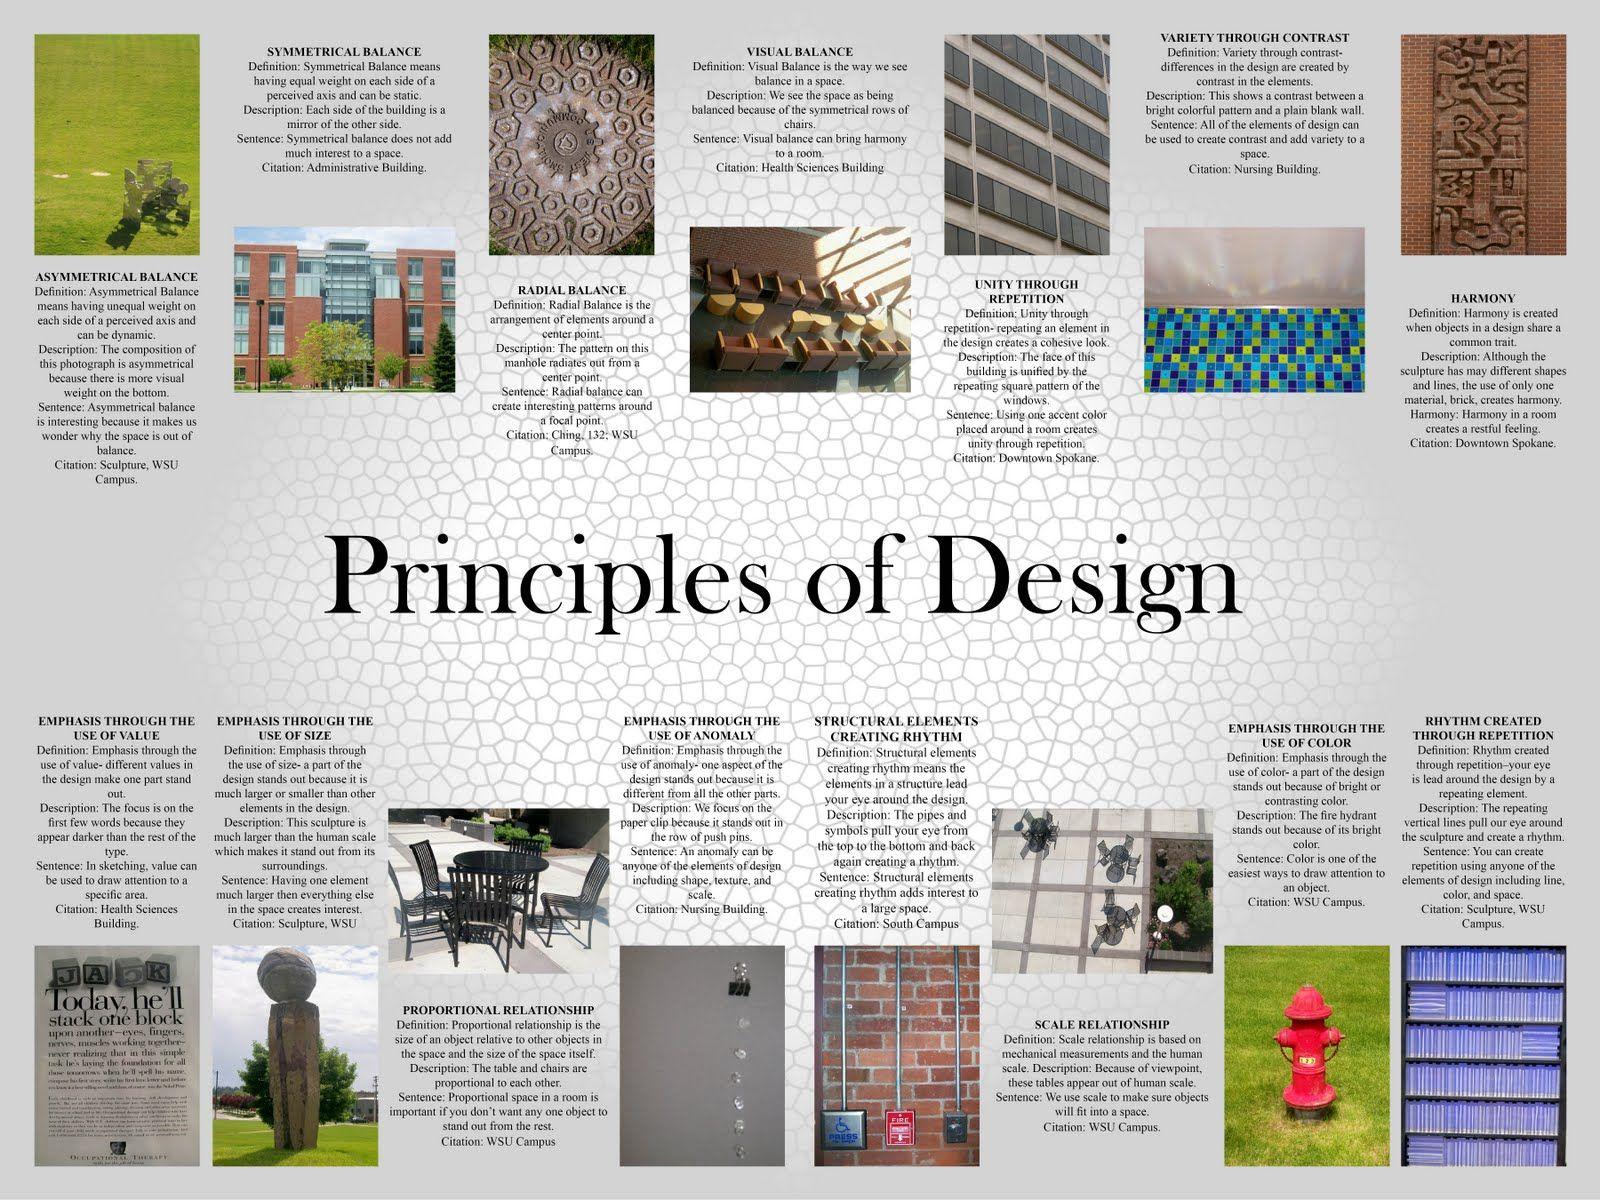 Elements And Principles Of Design Principles Of Design Interior Design Elements Elements And Principles